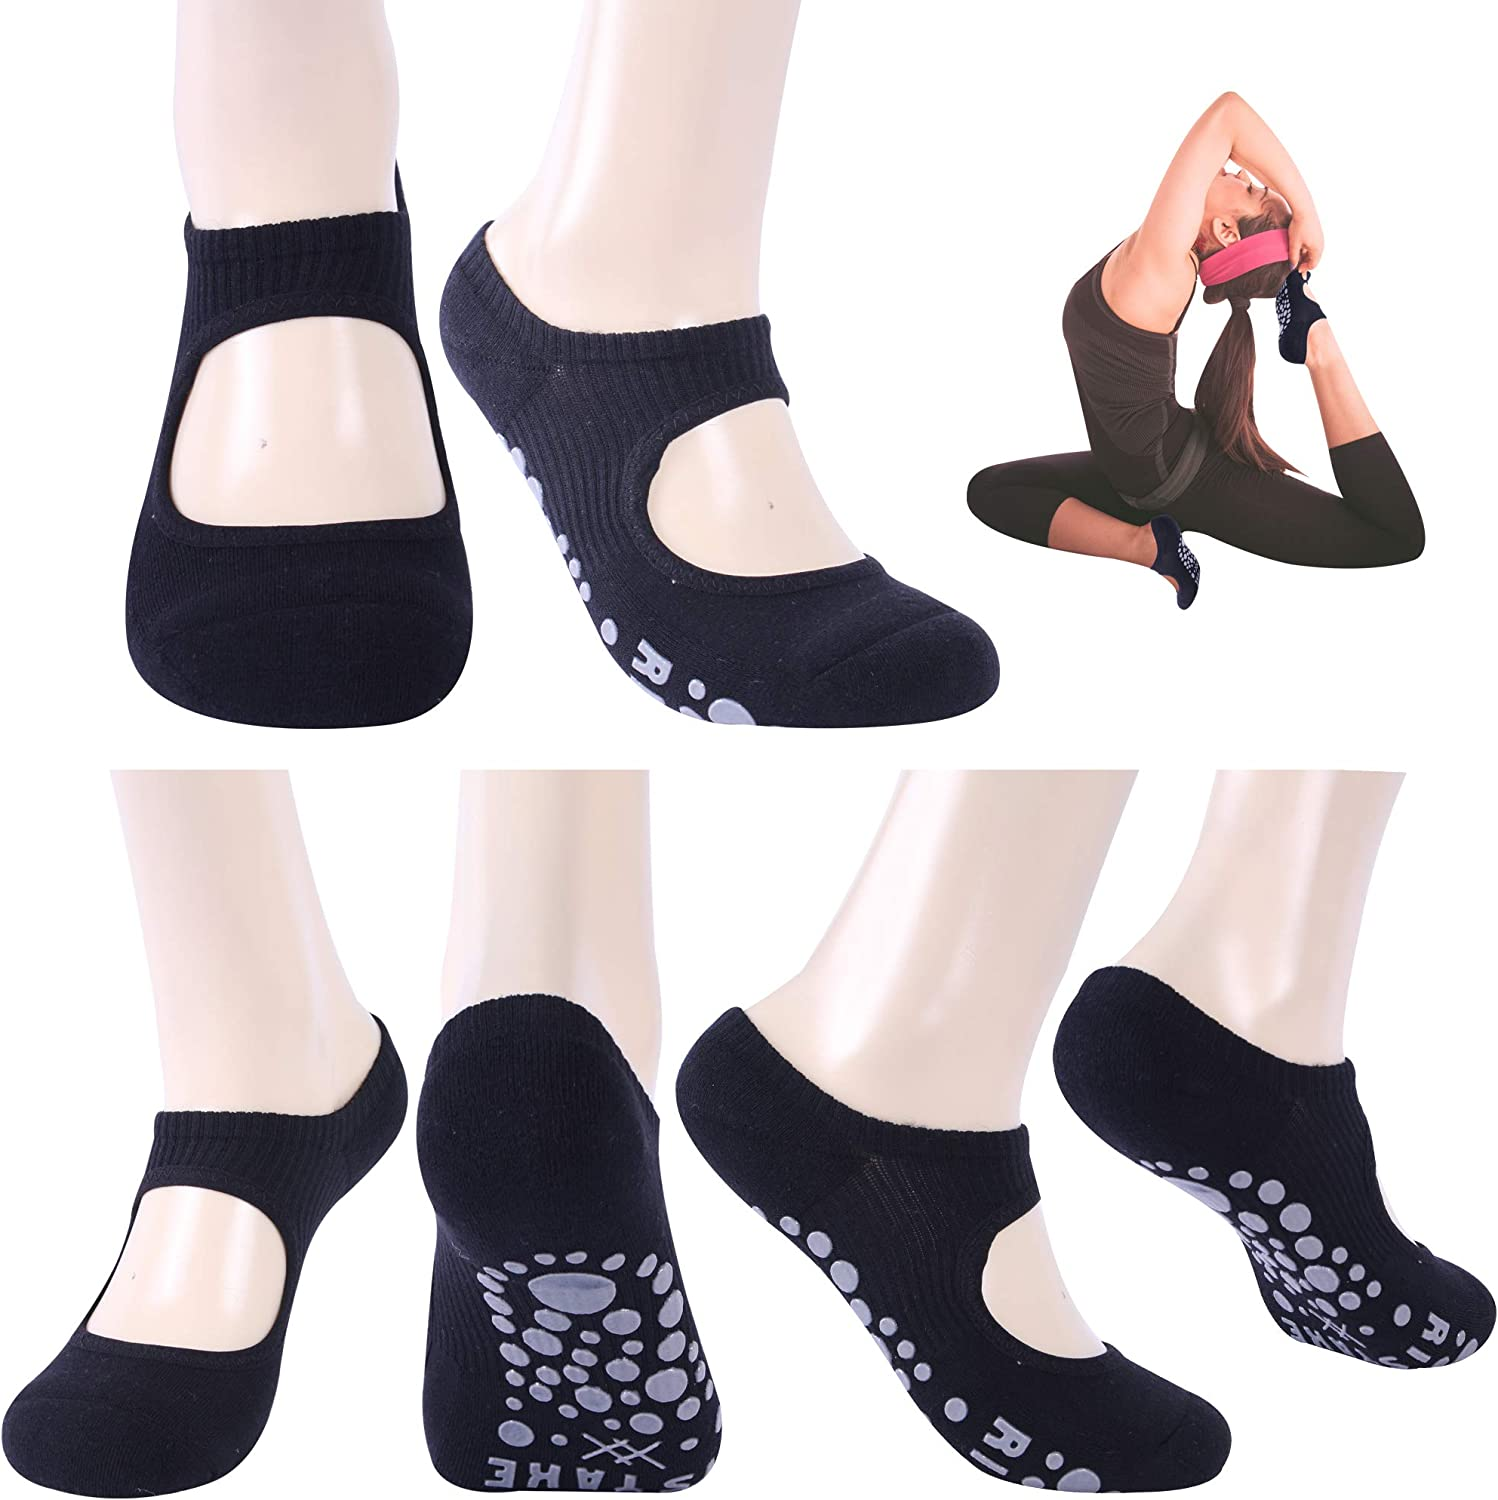 Ristake Yoga Socks for Women, Non-Slip Grip Socks for Pilates, Pure Barre, Dance, Barefoot Workouts, 3/6 Pairs